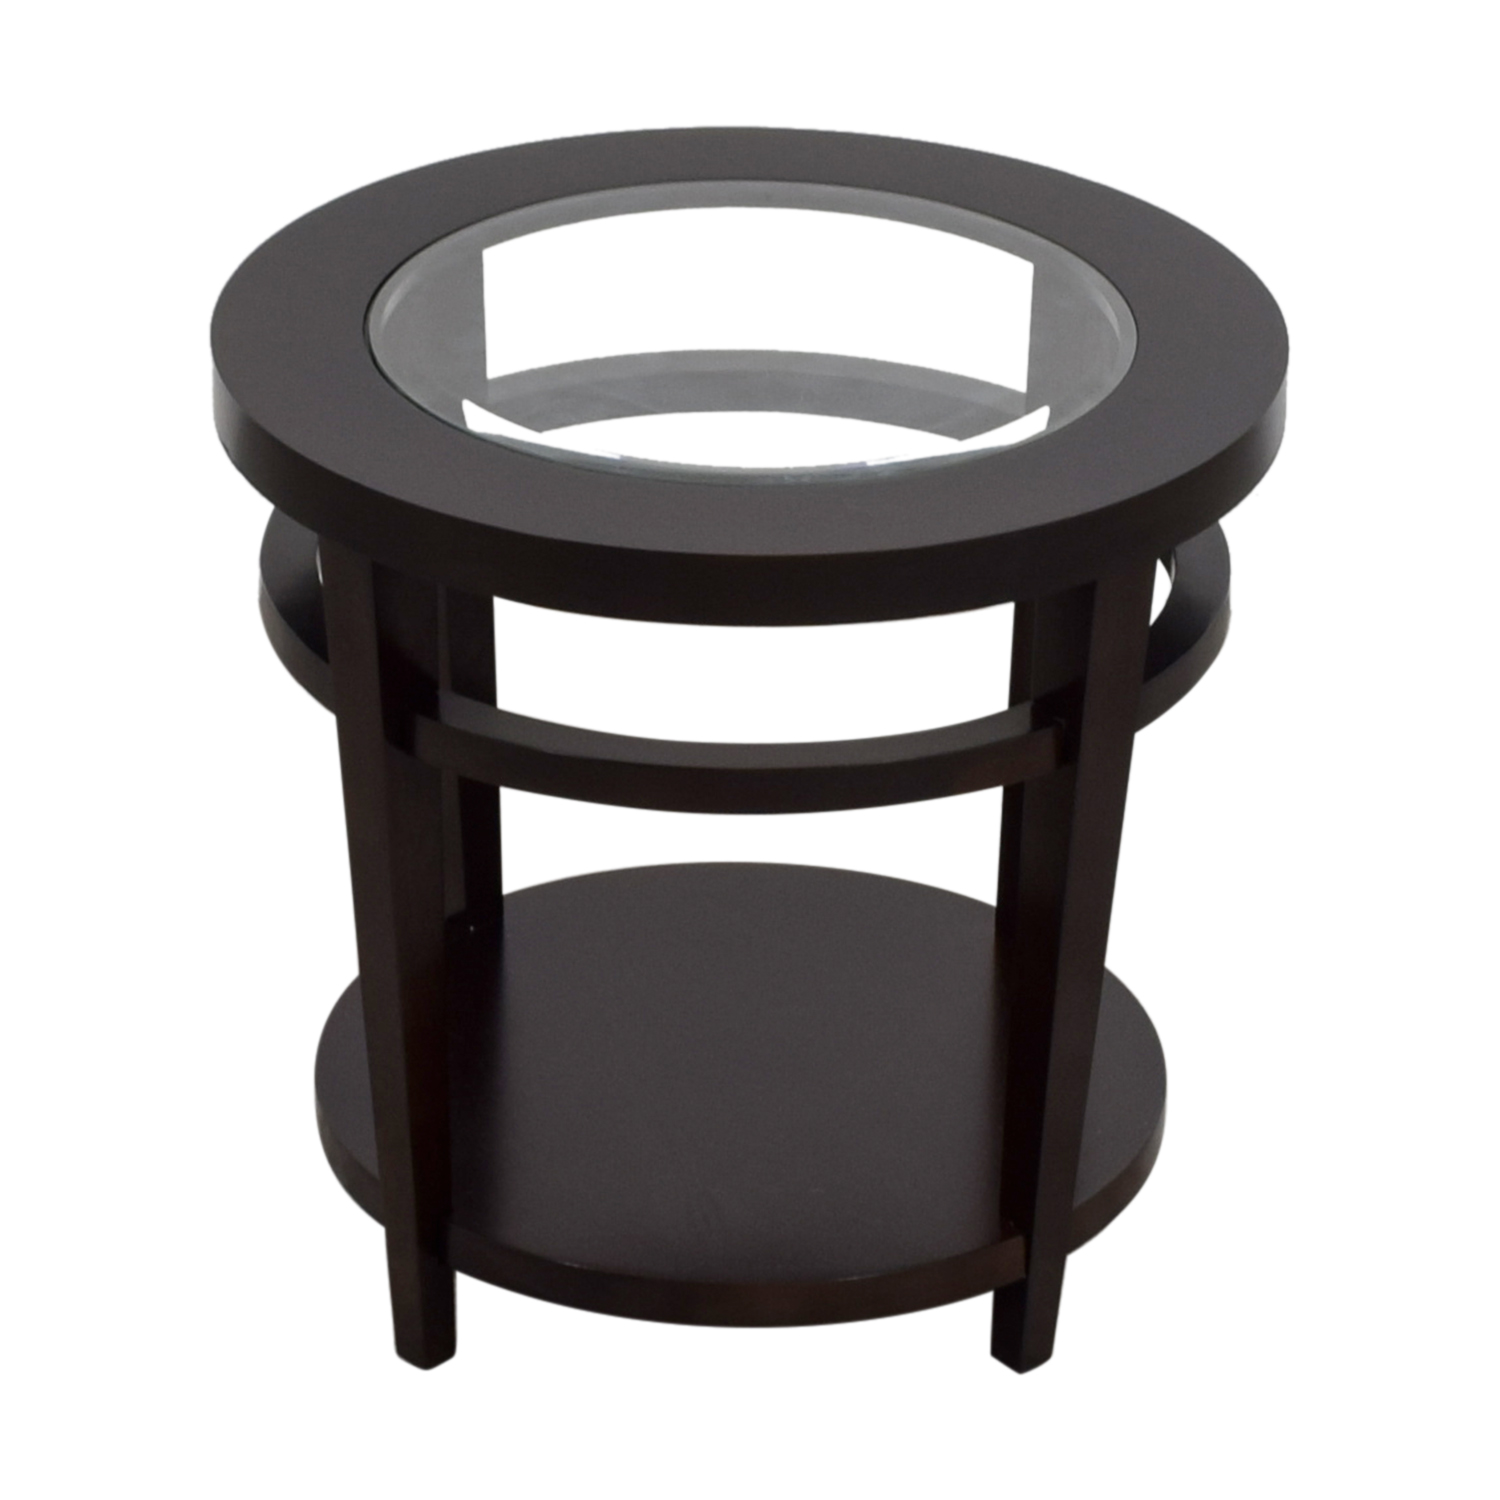 Macys Avalon Round Wood and Glass Side Table / Tables